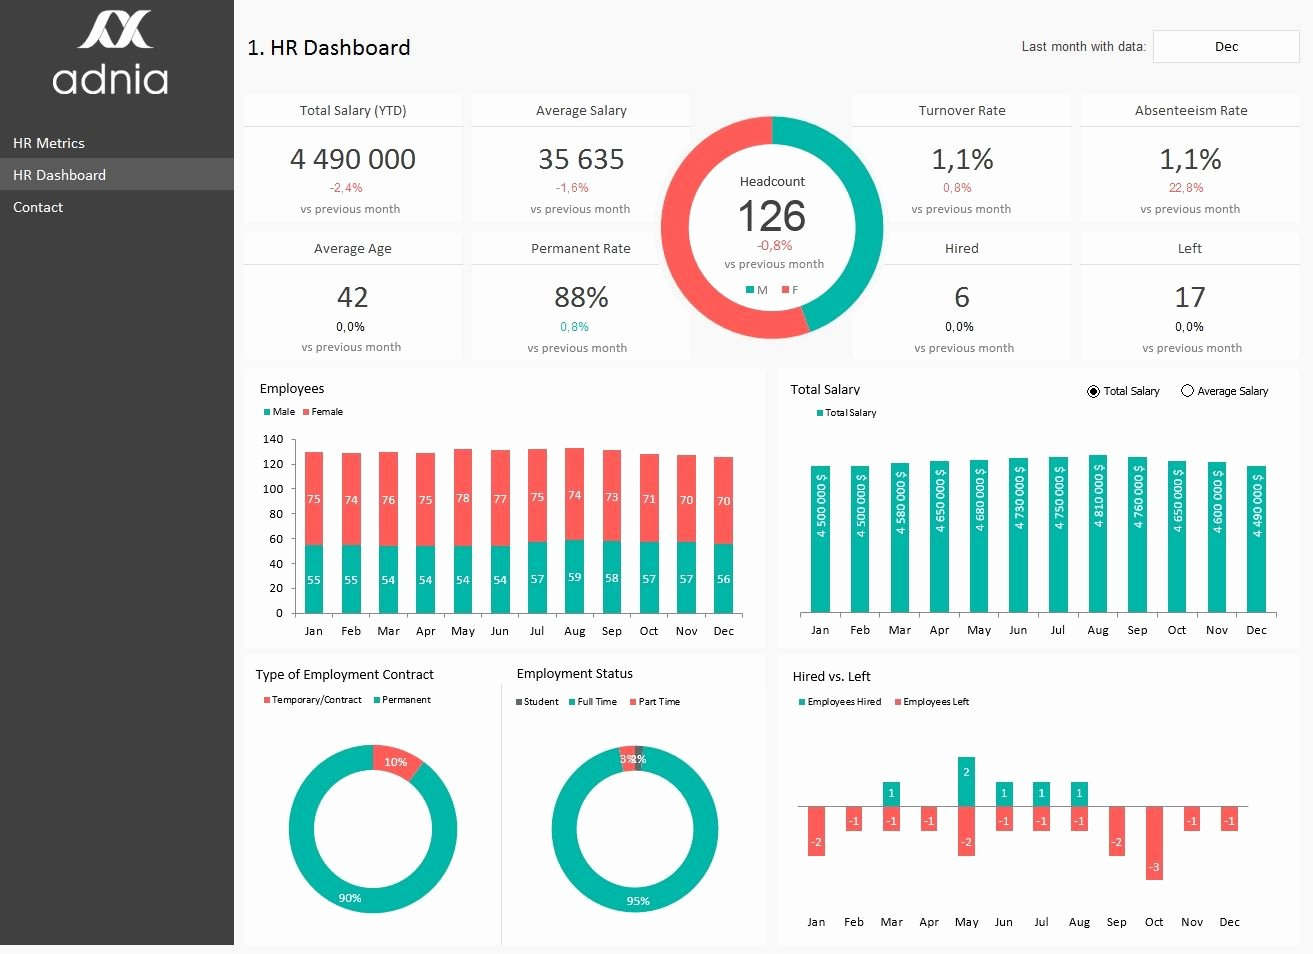 Human Resources Dashboard Template Elegant Hr Metrics Dashboard Template Excel Spreadsheet that is